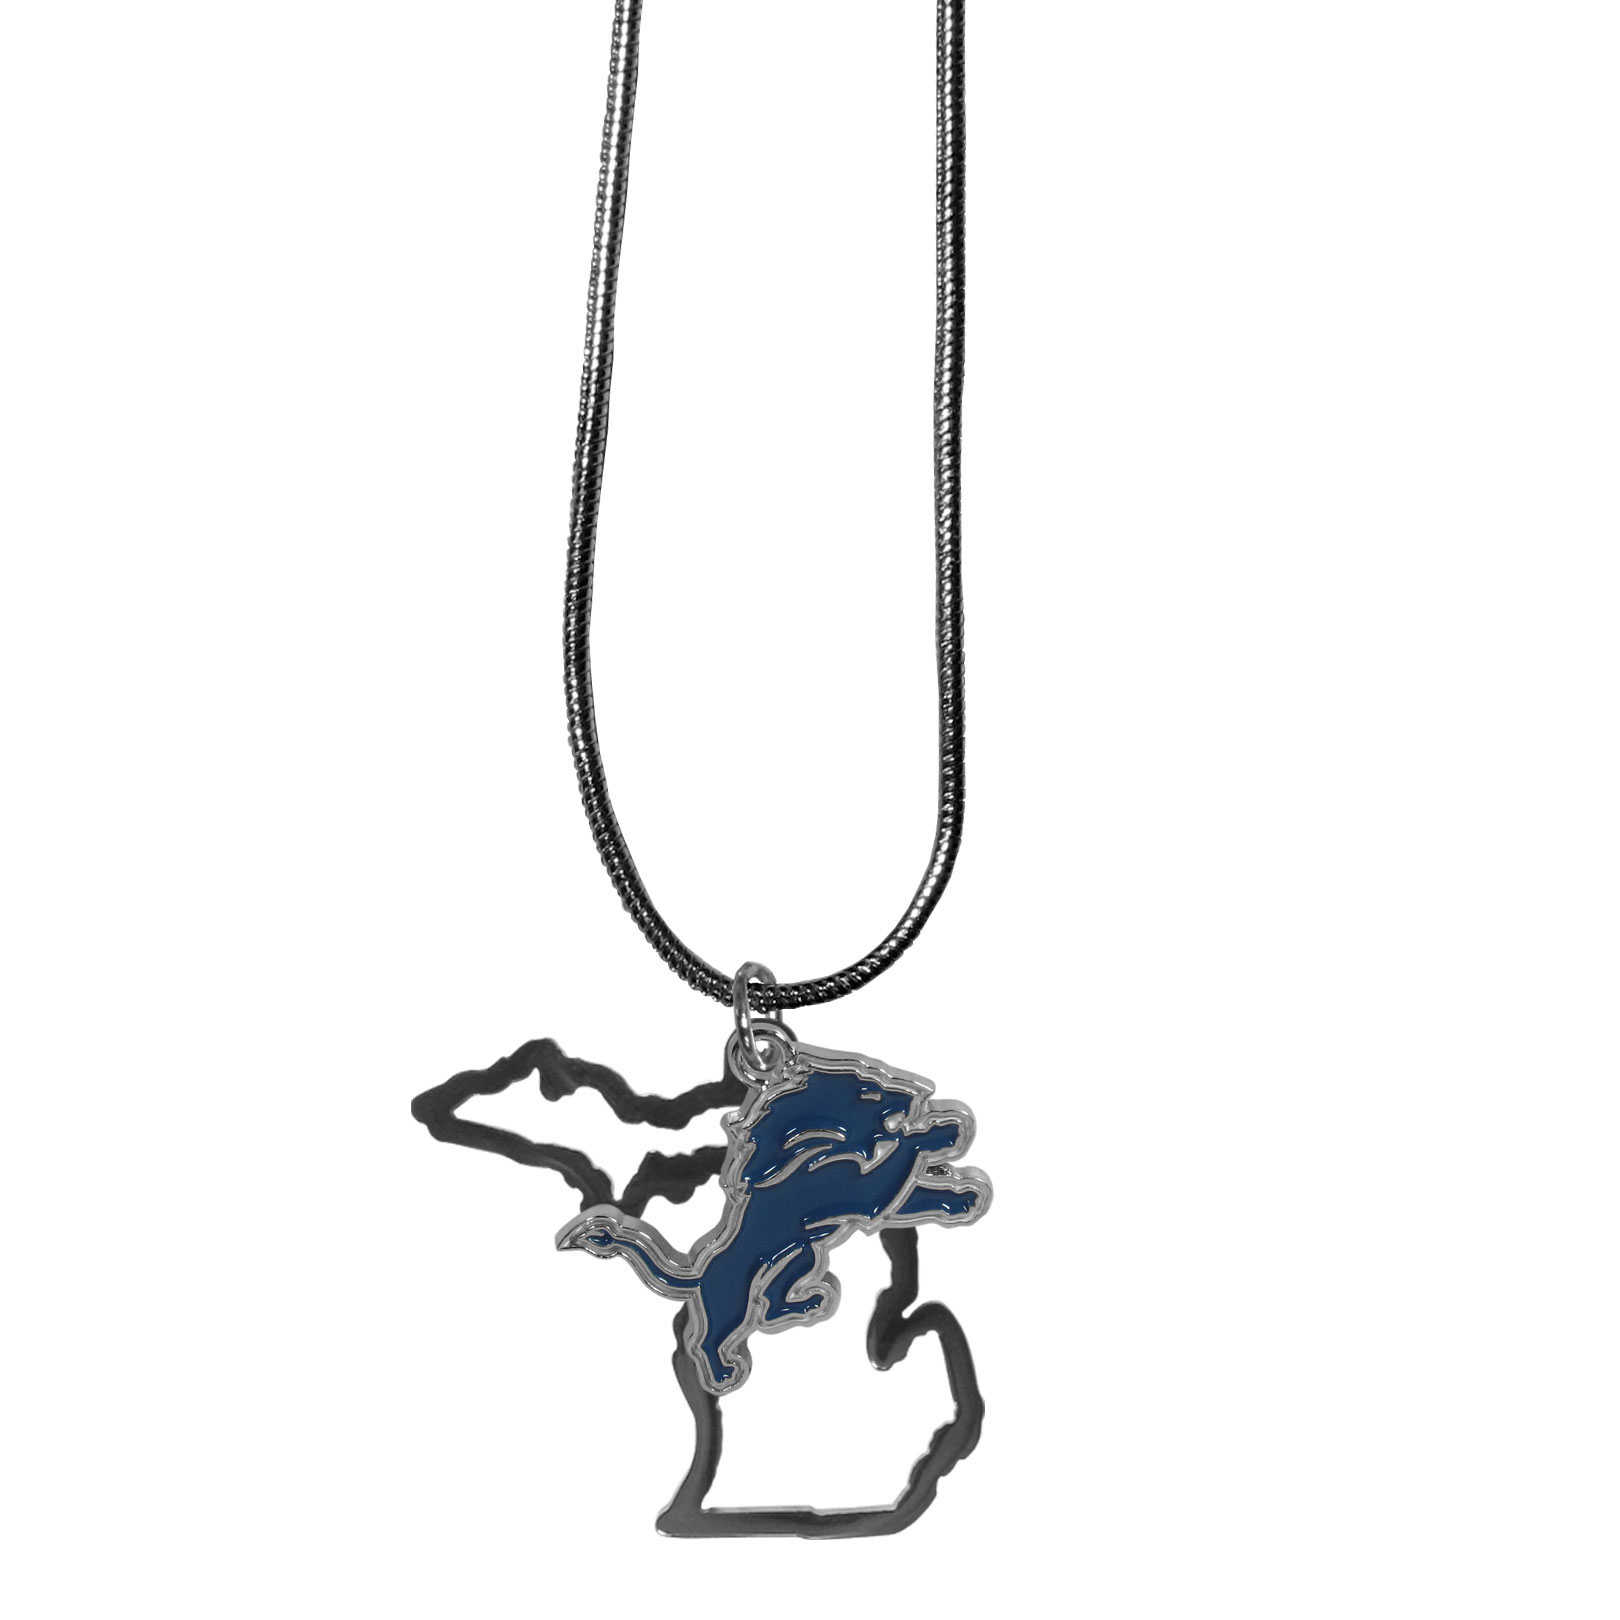 Detroit Lions State Charm Necklace - Get in on the trend! State themes are a trend that just keeps getting more popular and these necklaces take the state style and give it a sporty twist with a Detroit Lions added to the state outline charm. The come on a snake chain that is 22 inches long.